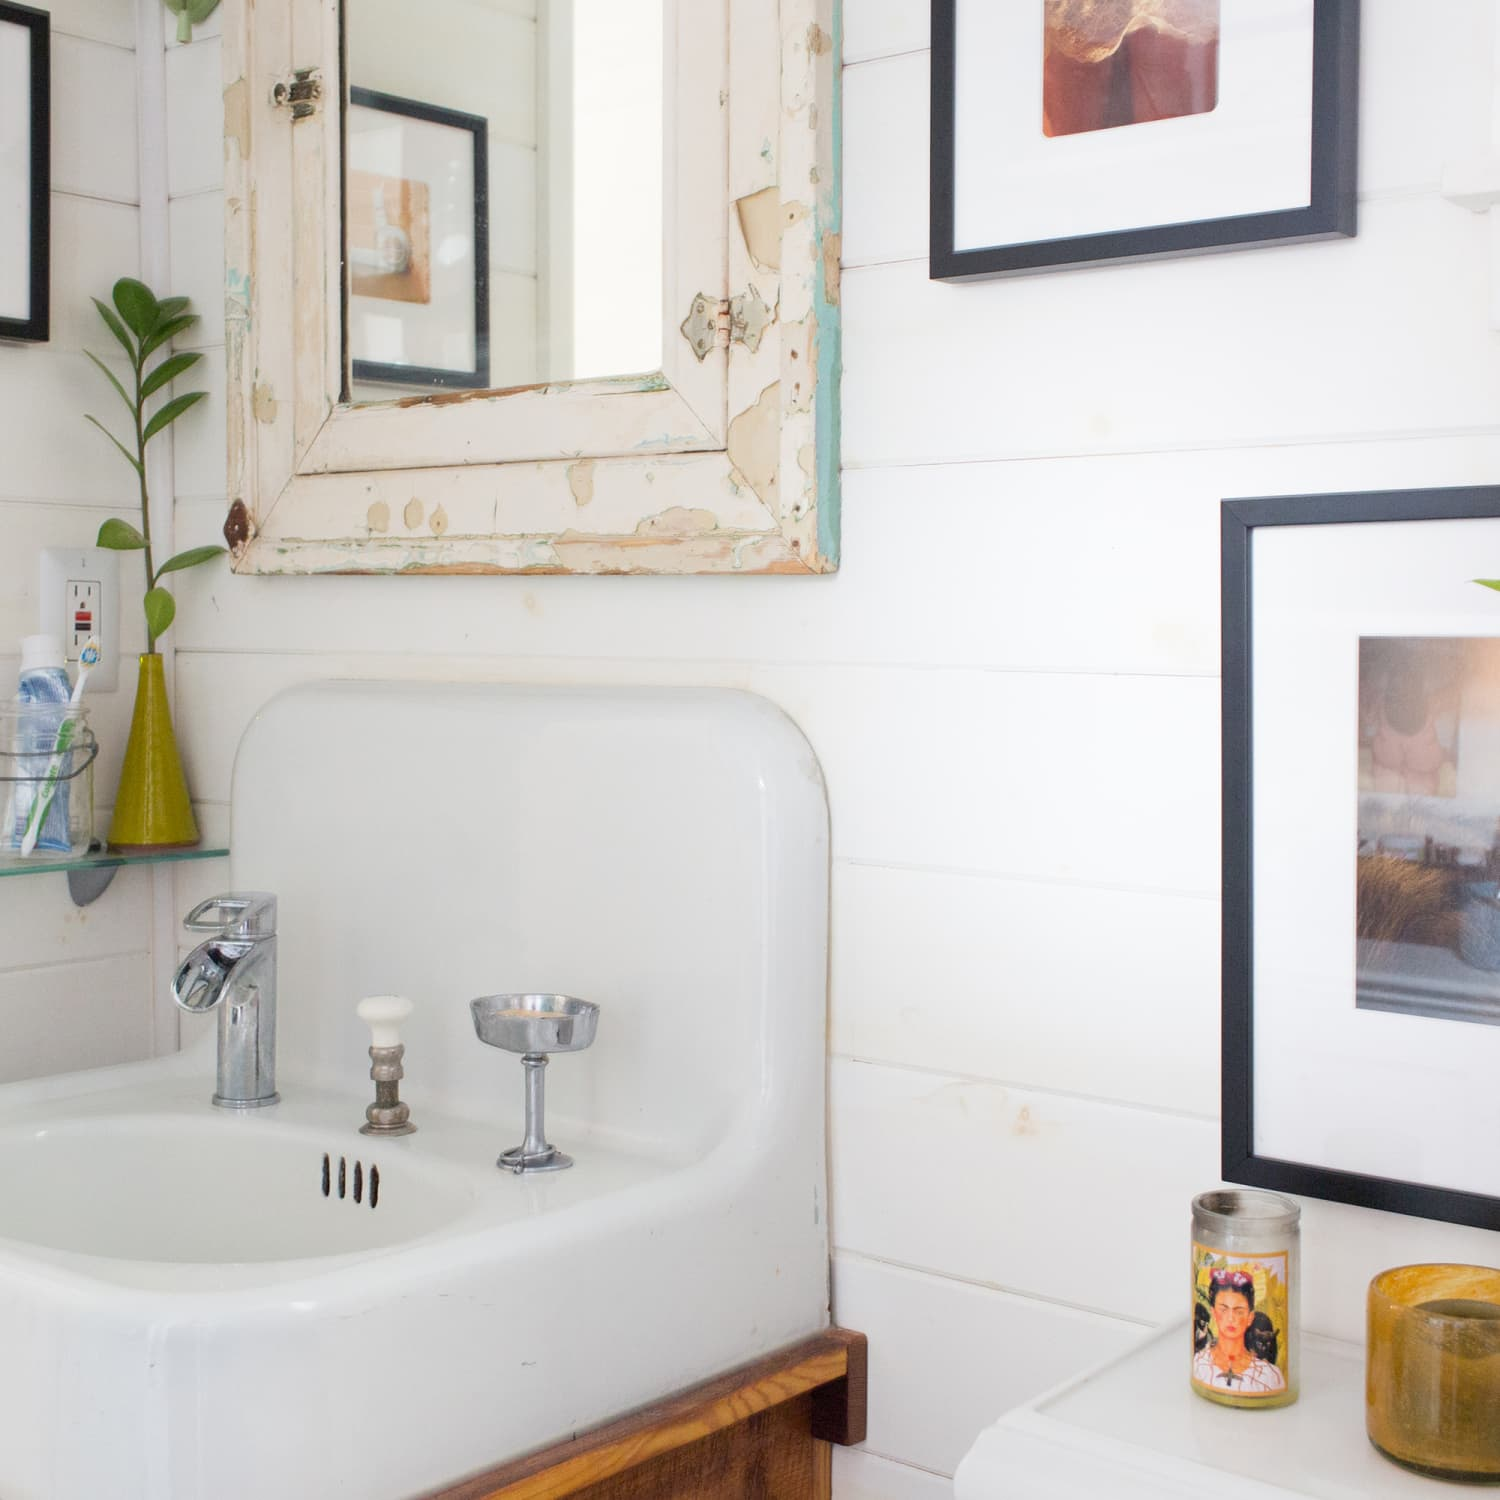 Small Details To Boost Your Rental Bathroom Apartment Therapy